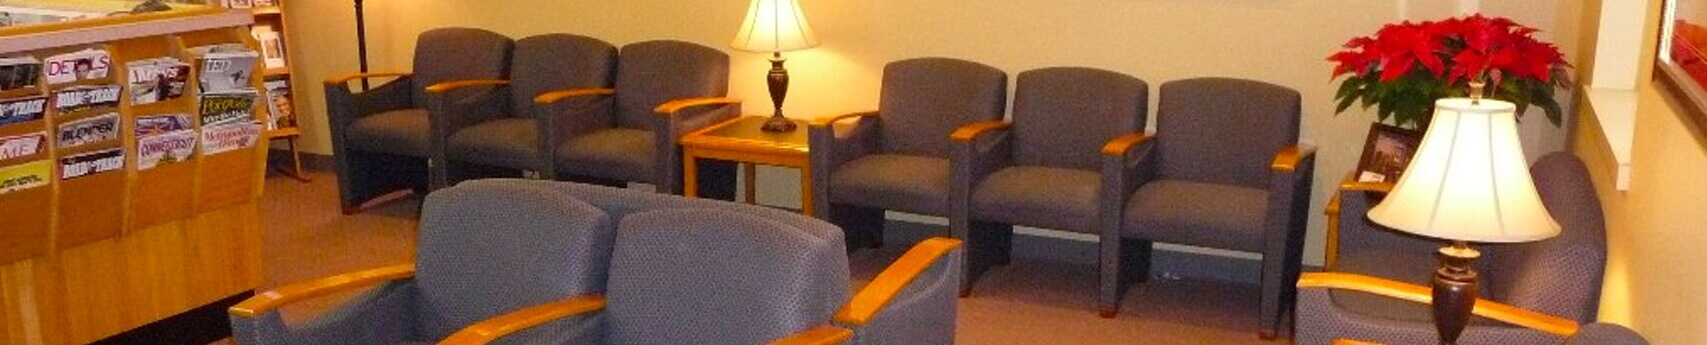 Patient Waiting Room at Wolcott Smiles